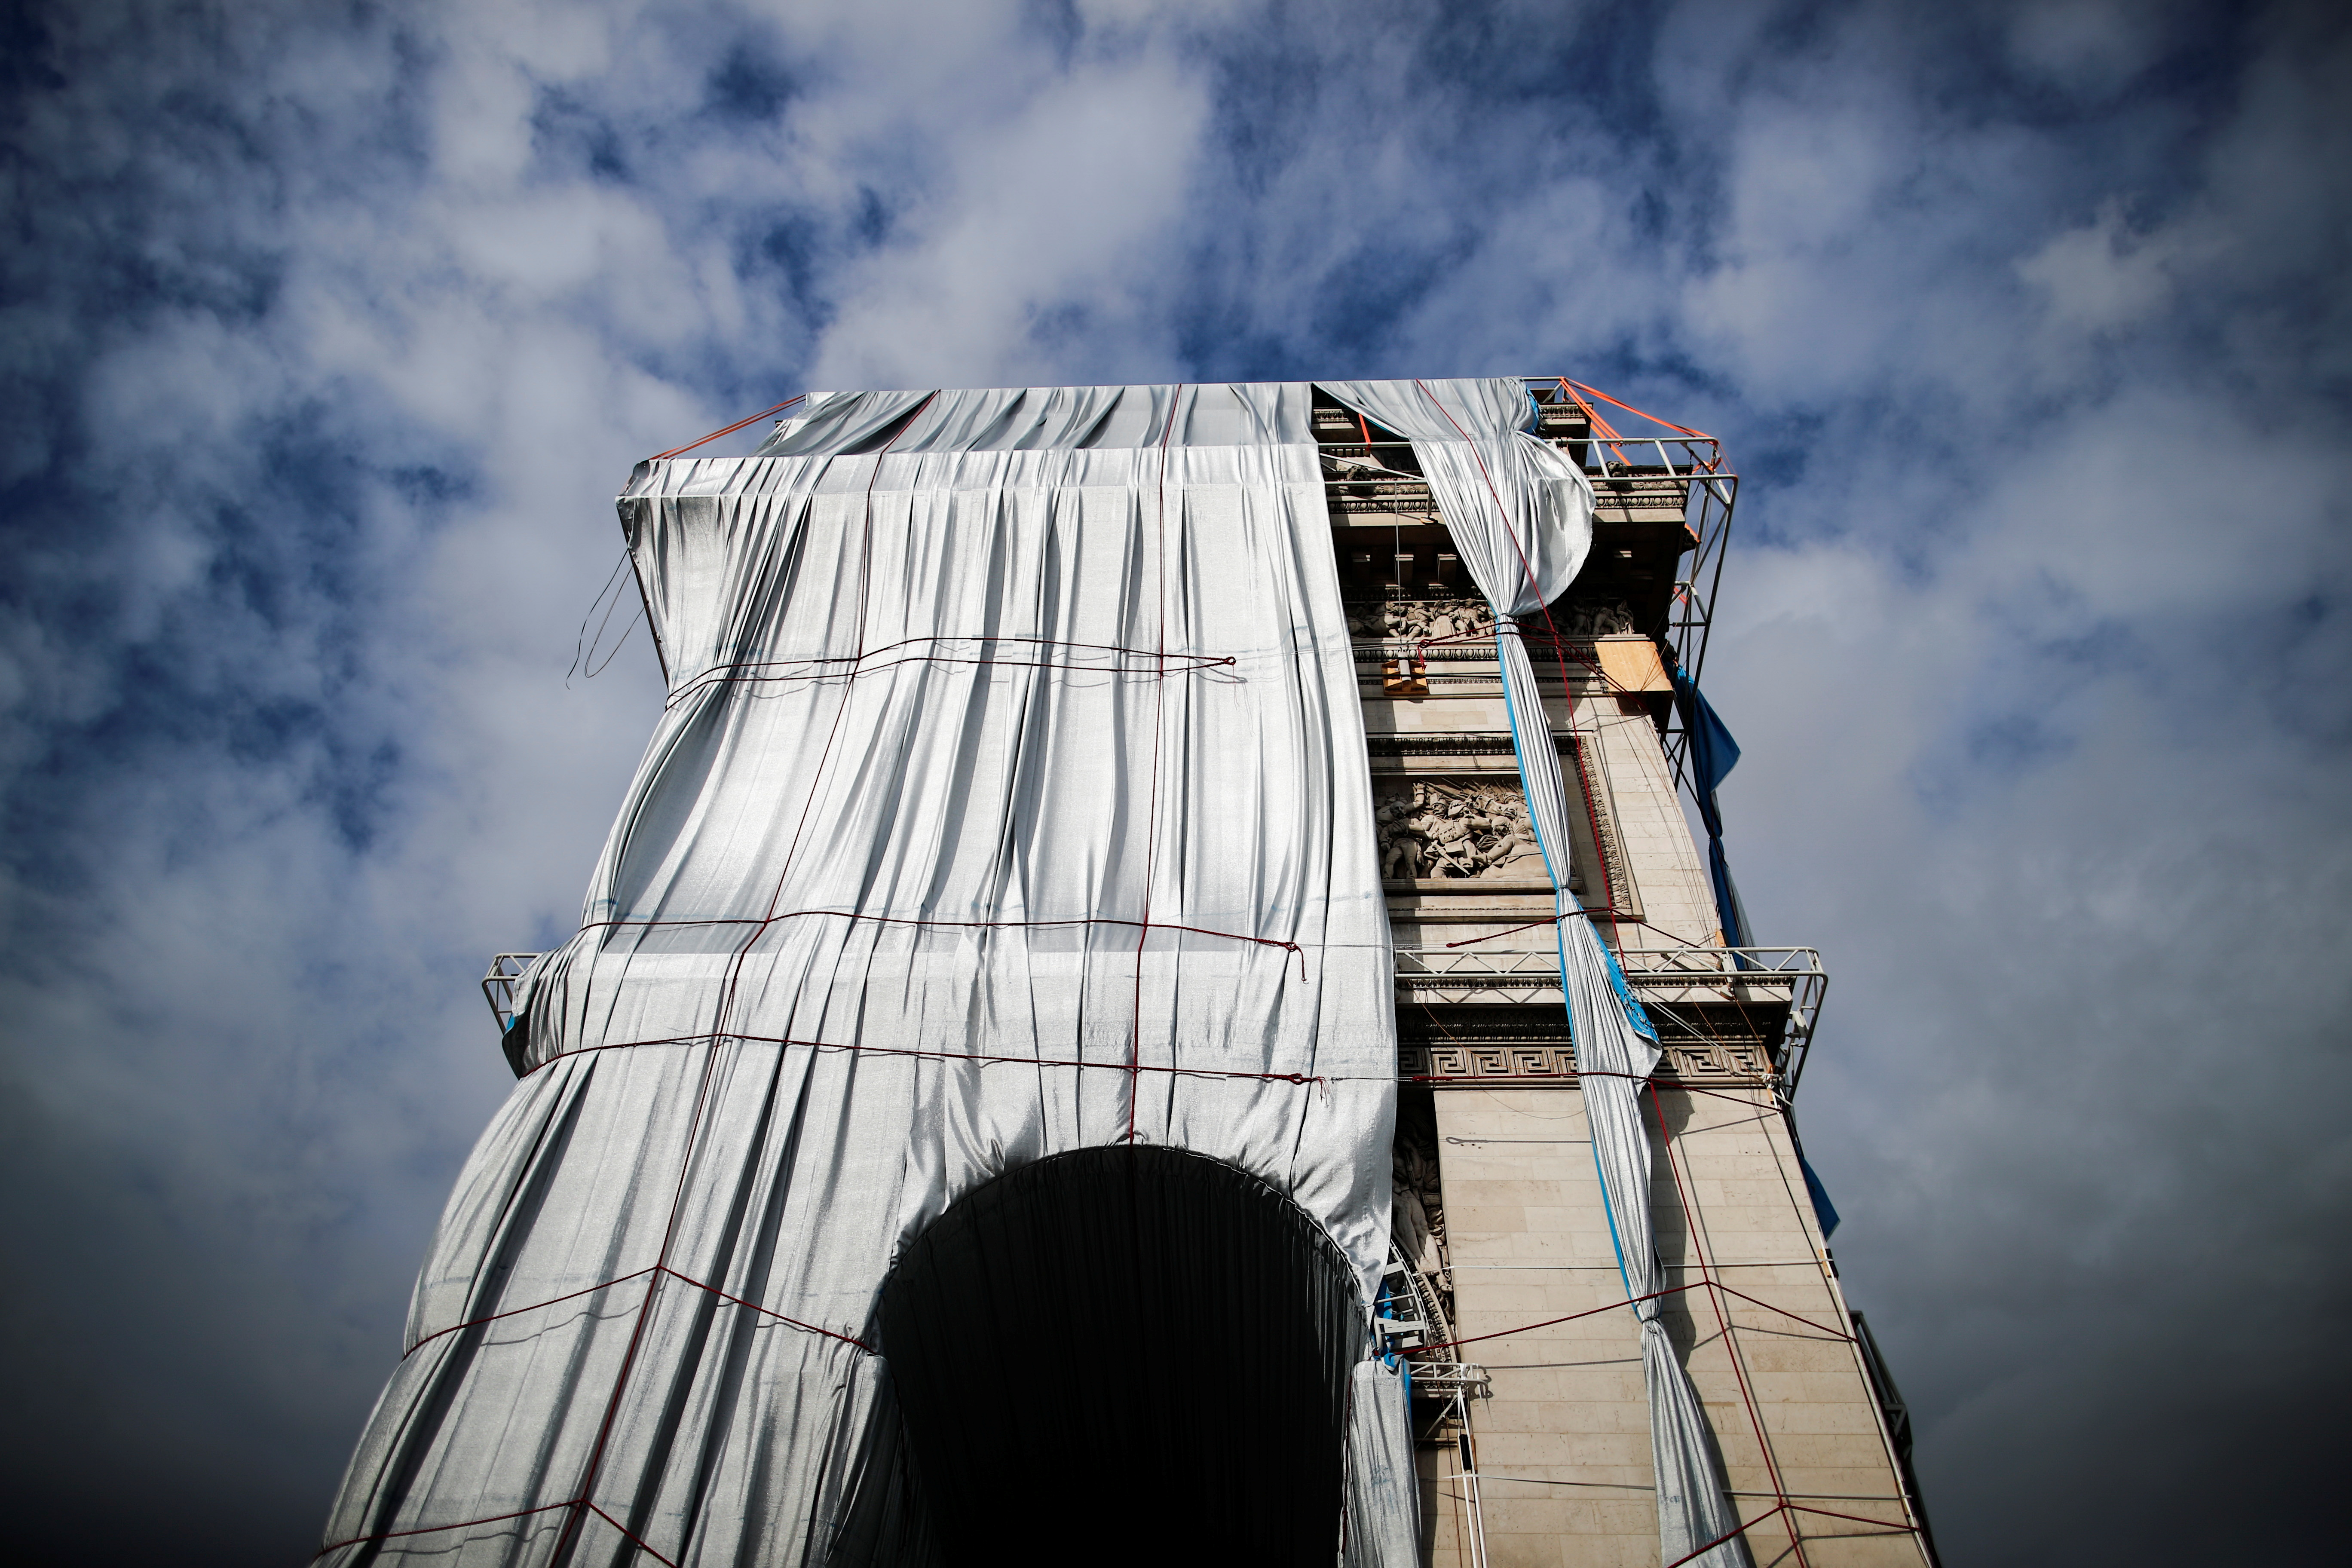 Rope access technicians work on the removal of the fully wrapped Arc de Triomphe monument, after it was wrapped for an art installation entitled 'L'Arc de Triomphe, Wrapped' conceived by the late artists Christo and Jeanne-Claude, on the Champs-Elysees avenue in Paris, France, October 4, 2021. REUTERS/Benoit Tessier